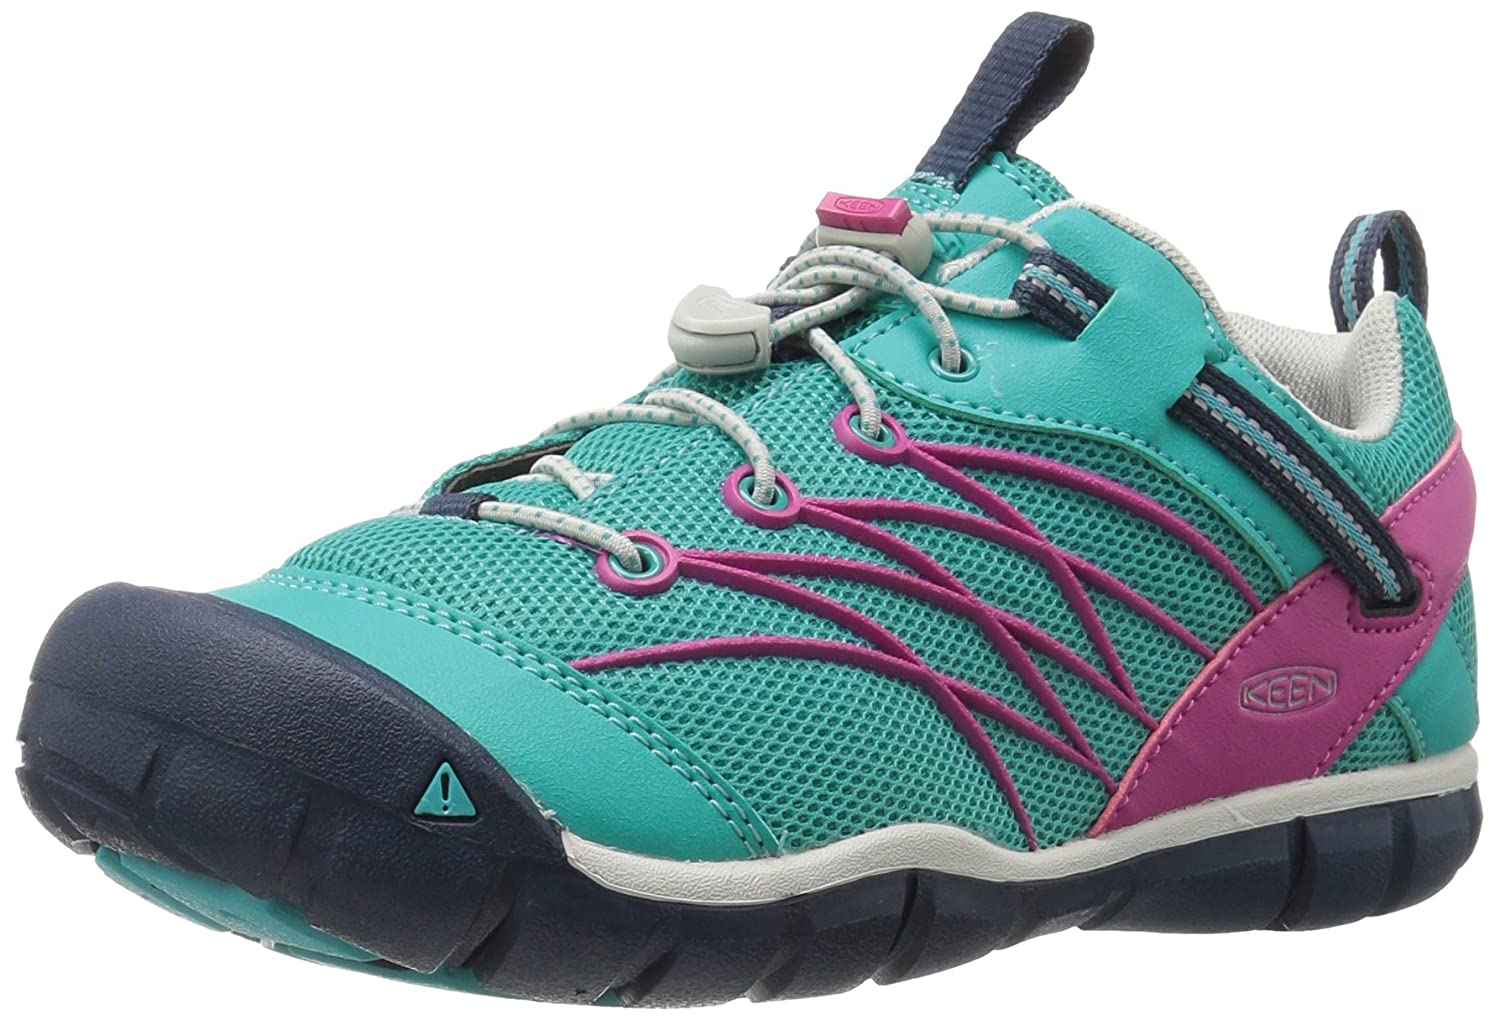 KEEN Chandler CNX Shoe B01H5RU8UW 9 Toddler US Toddler|Viridian/Very Berry